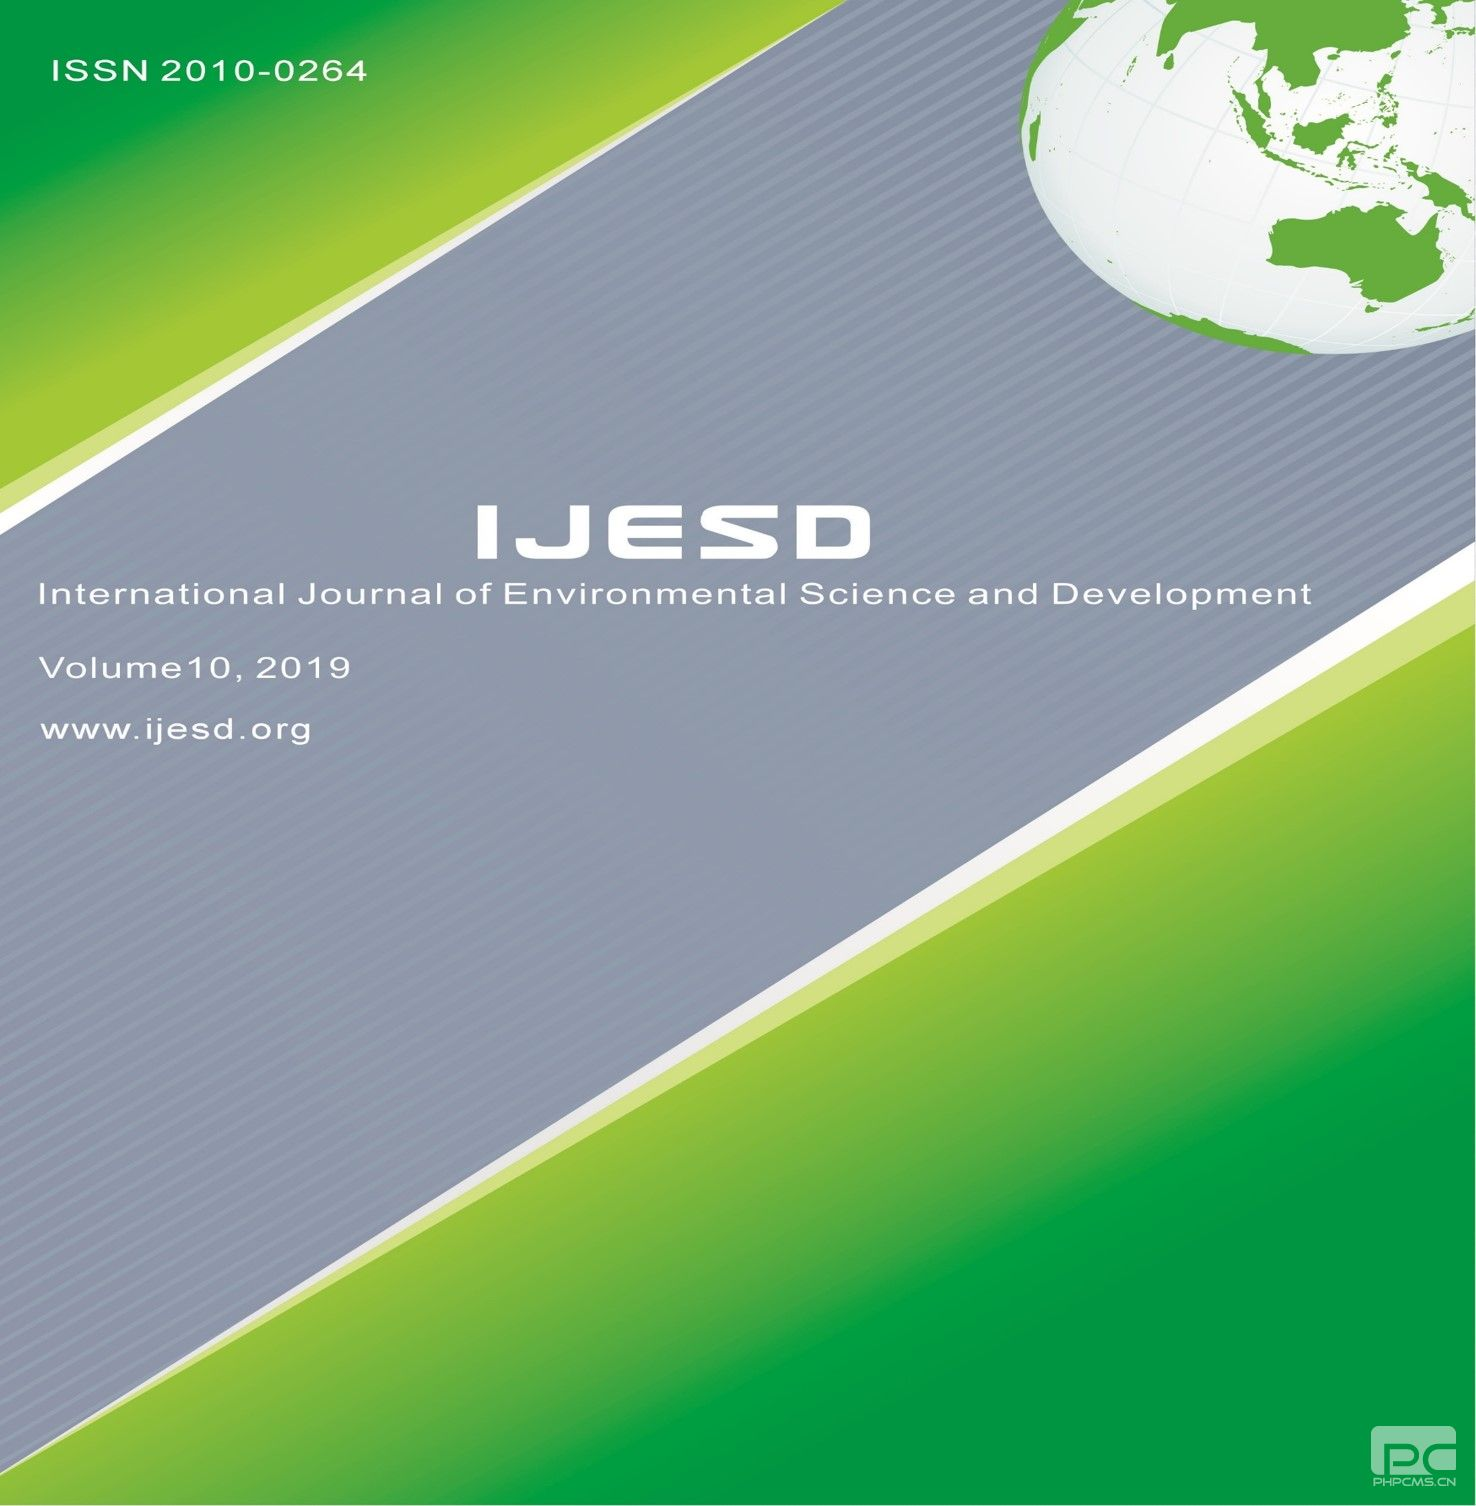 International Journal of Environmental Science and